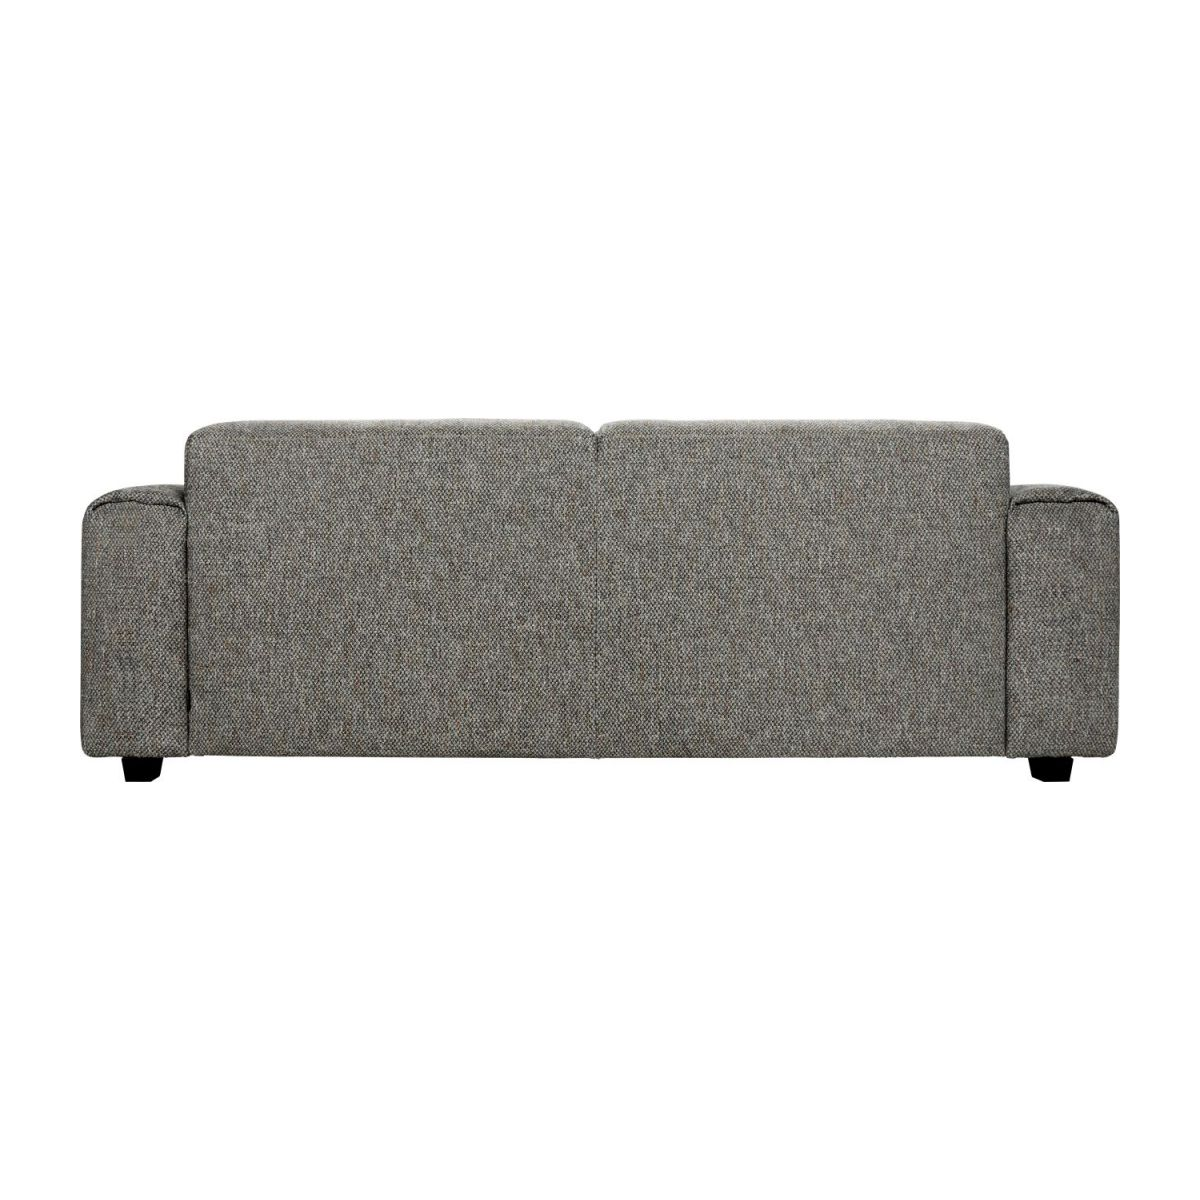 3 seater sofa in Bellagio fabric, night black n°5